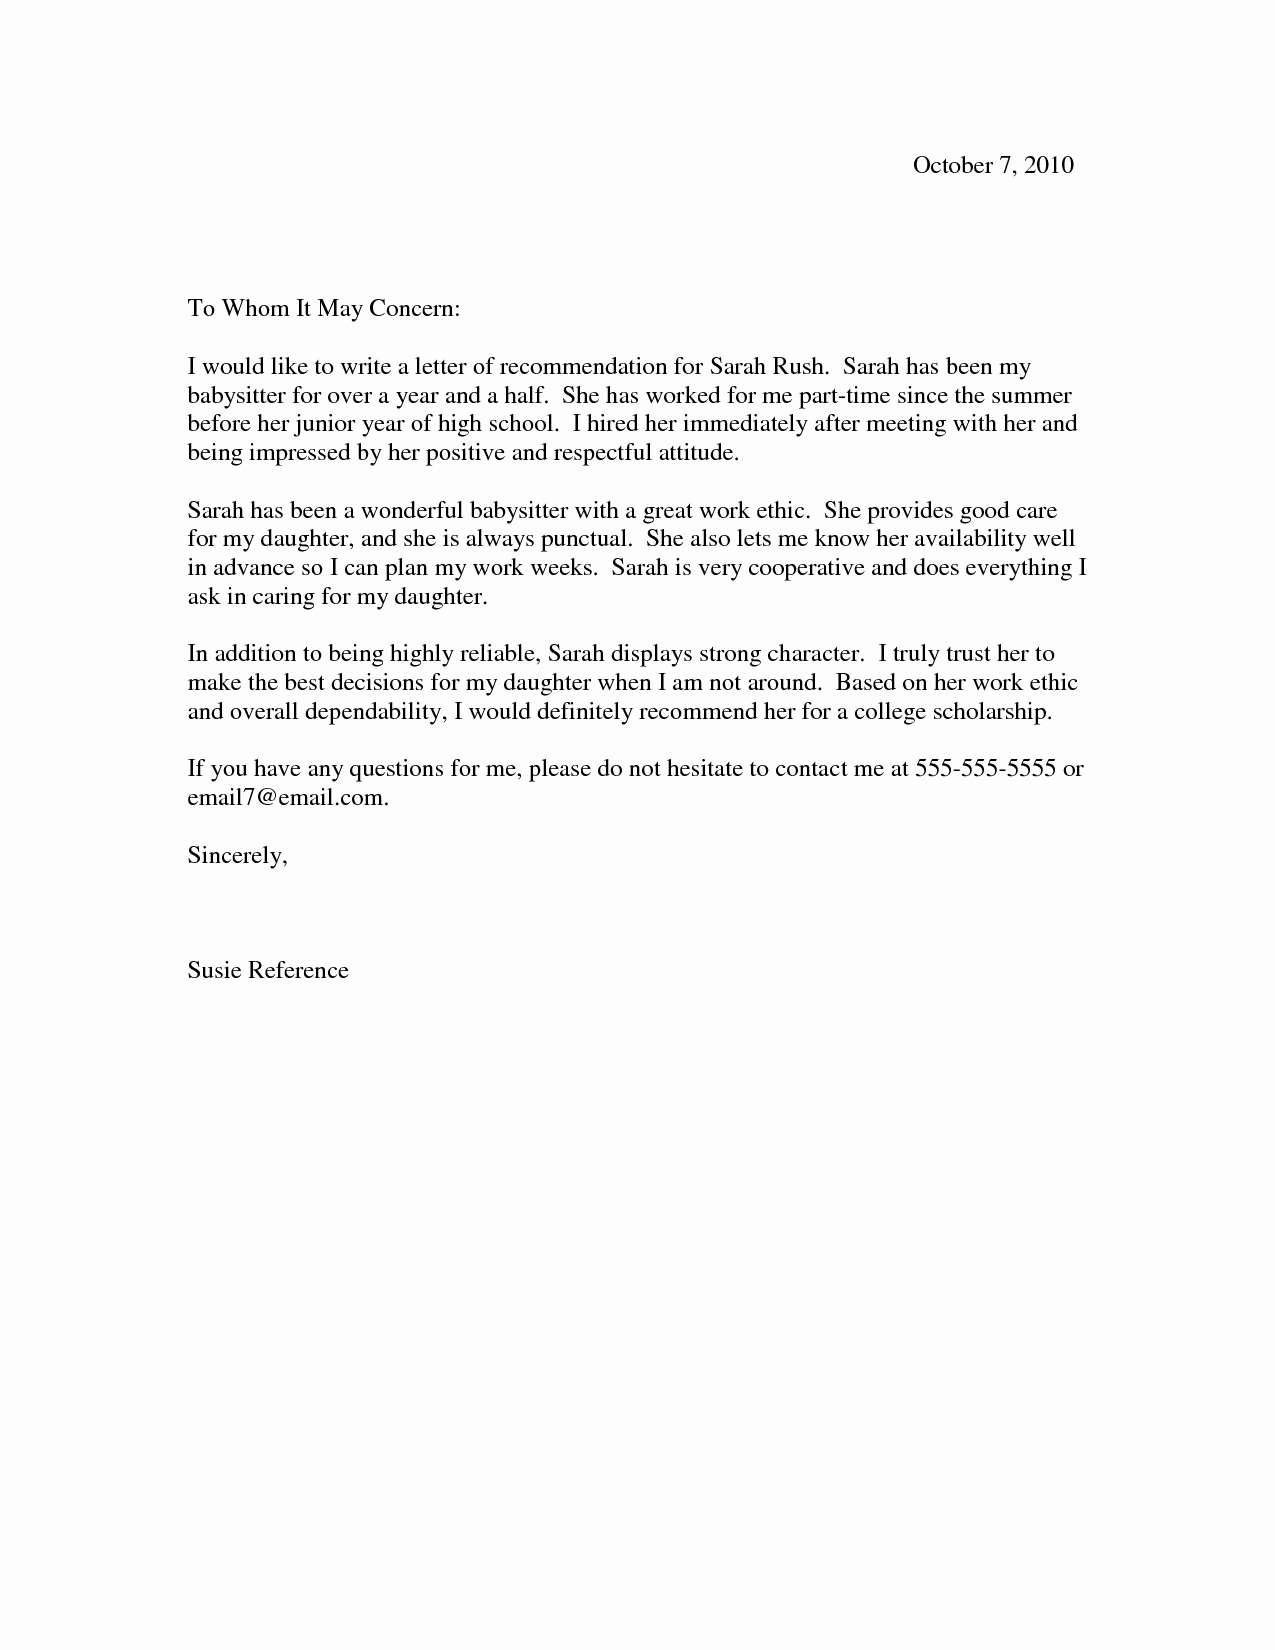 Reference Letter Template Free Unique Scholarship Re Mendation Letter Scholarship